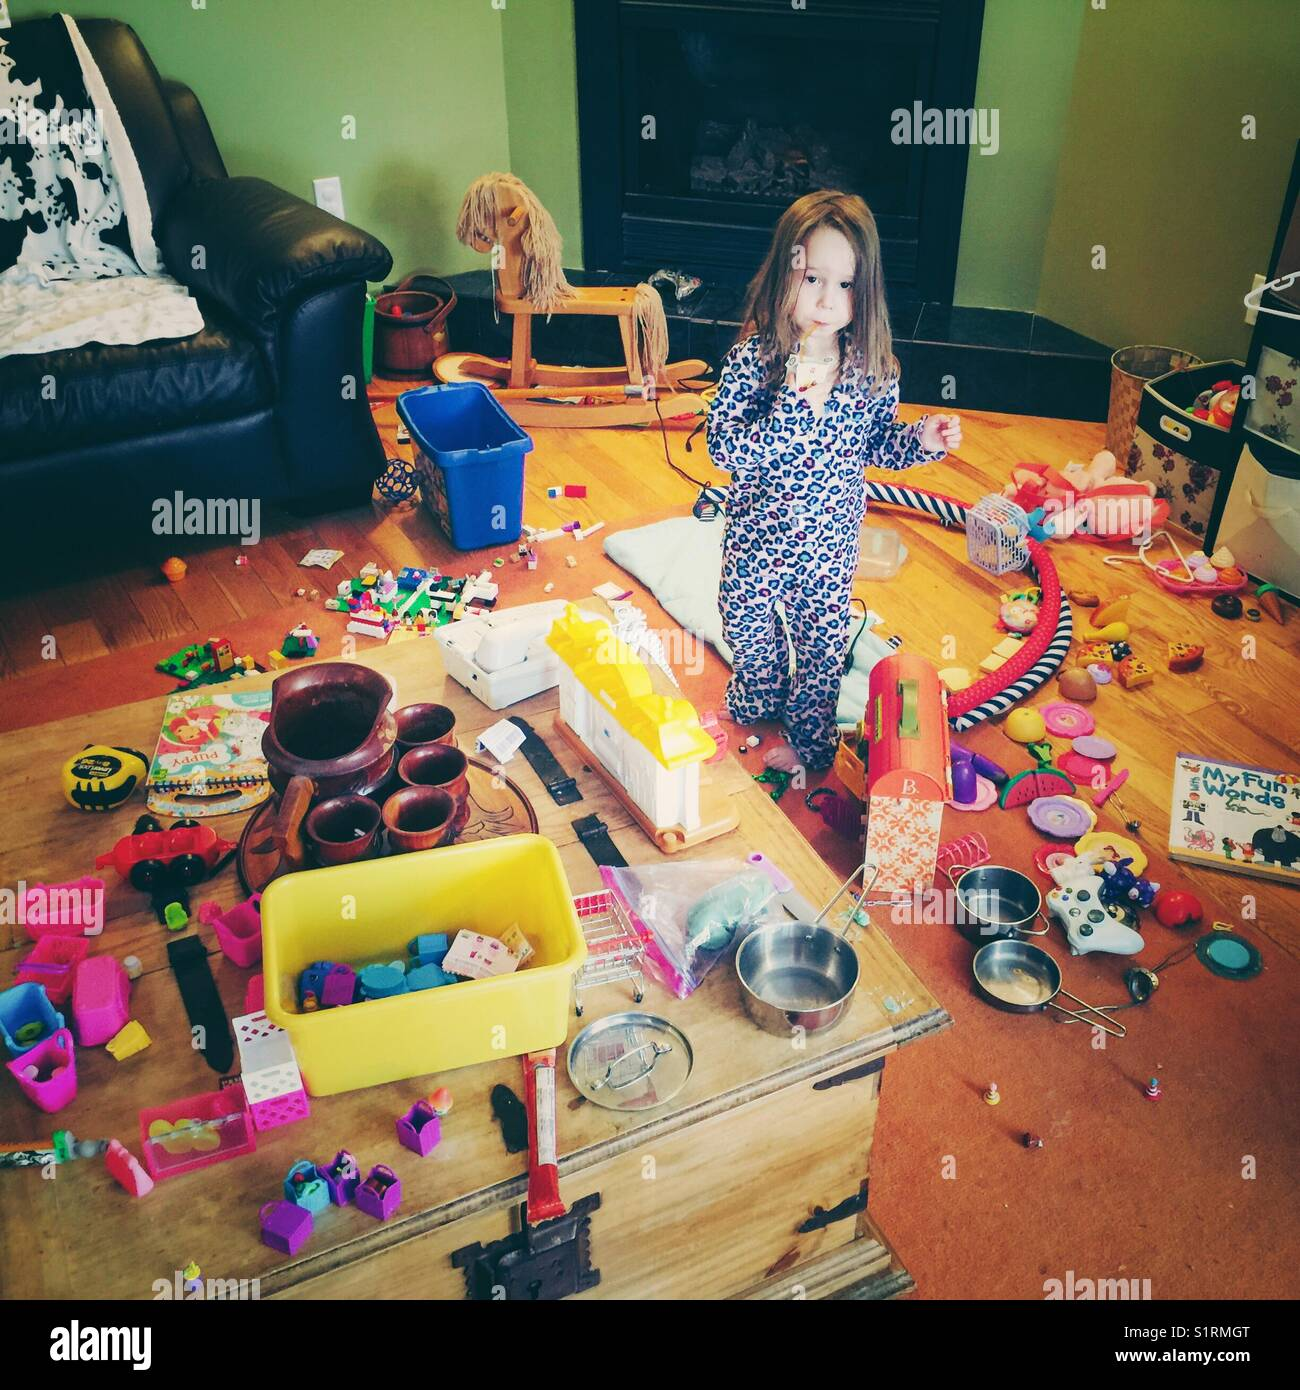 Young girl looking innocent amidst the huge mess of toys she made - Stock Image